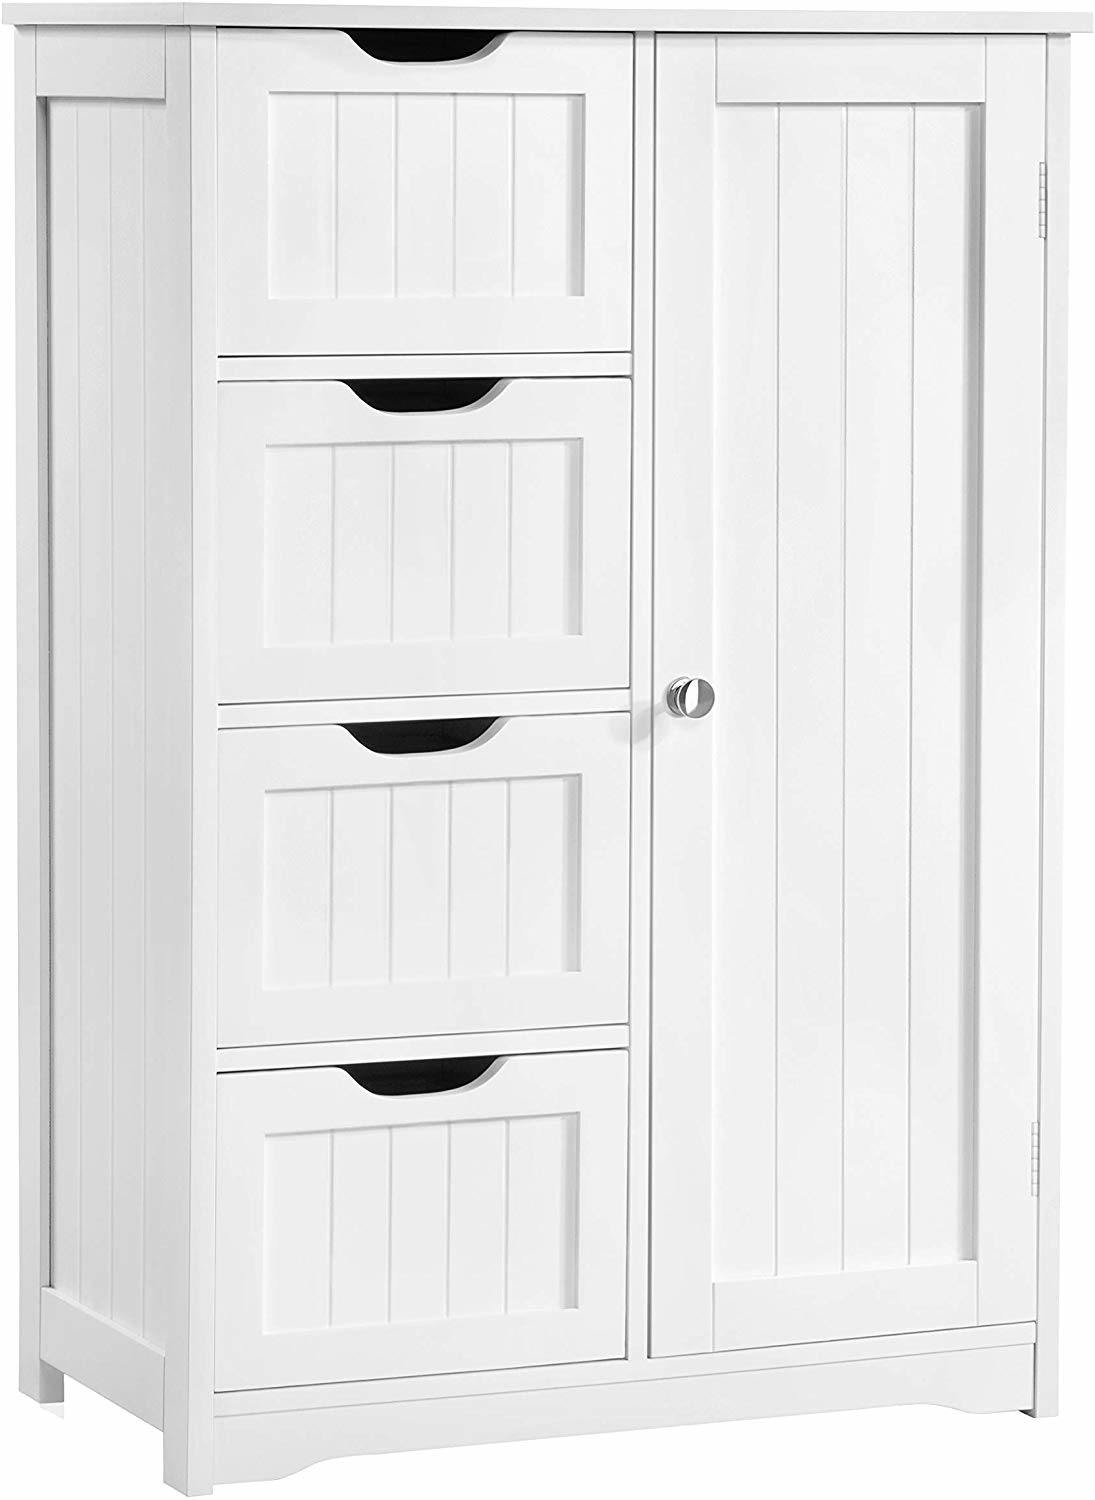 Bathroom Storage Cabinet With 4 Drawers